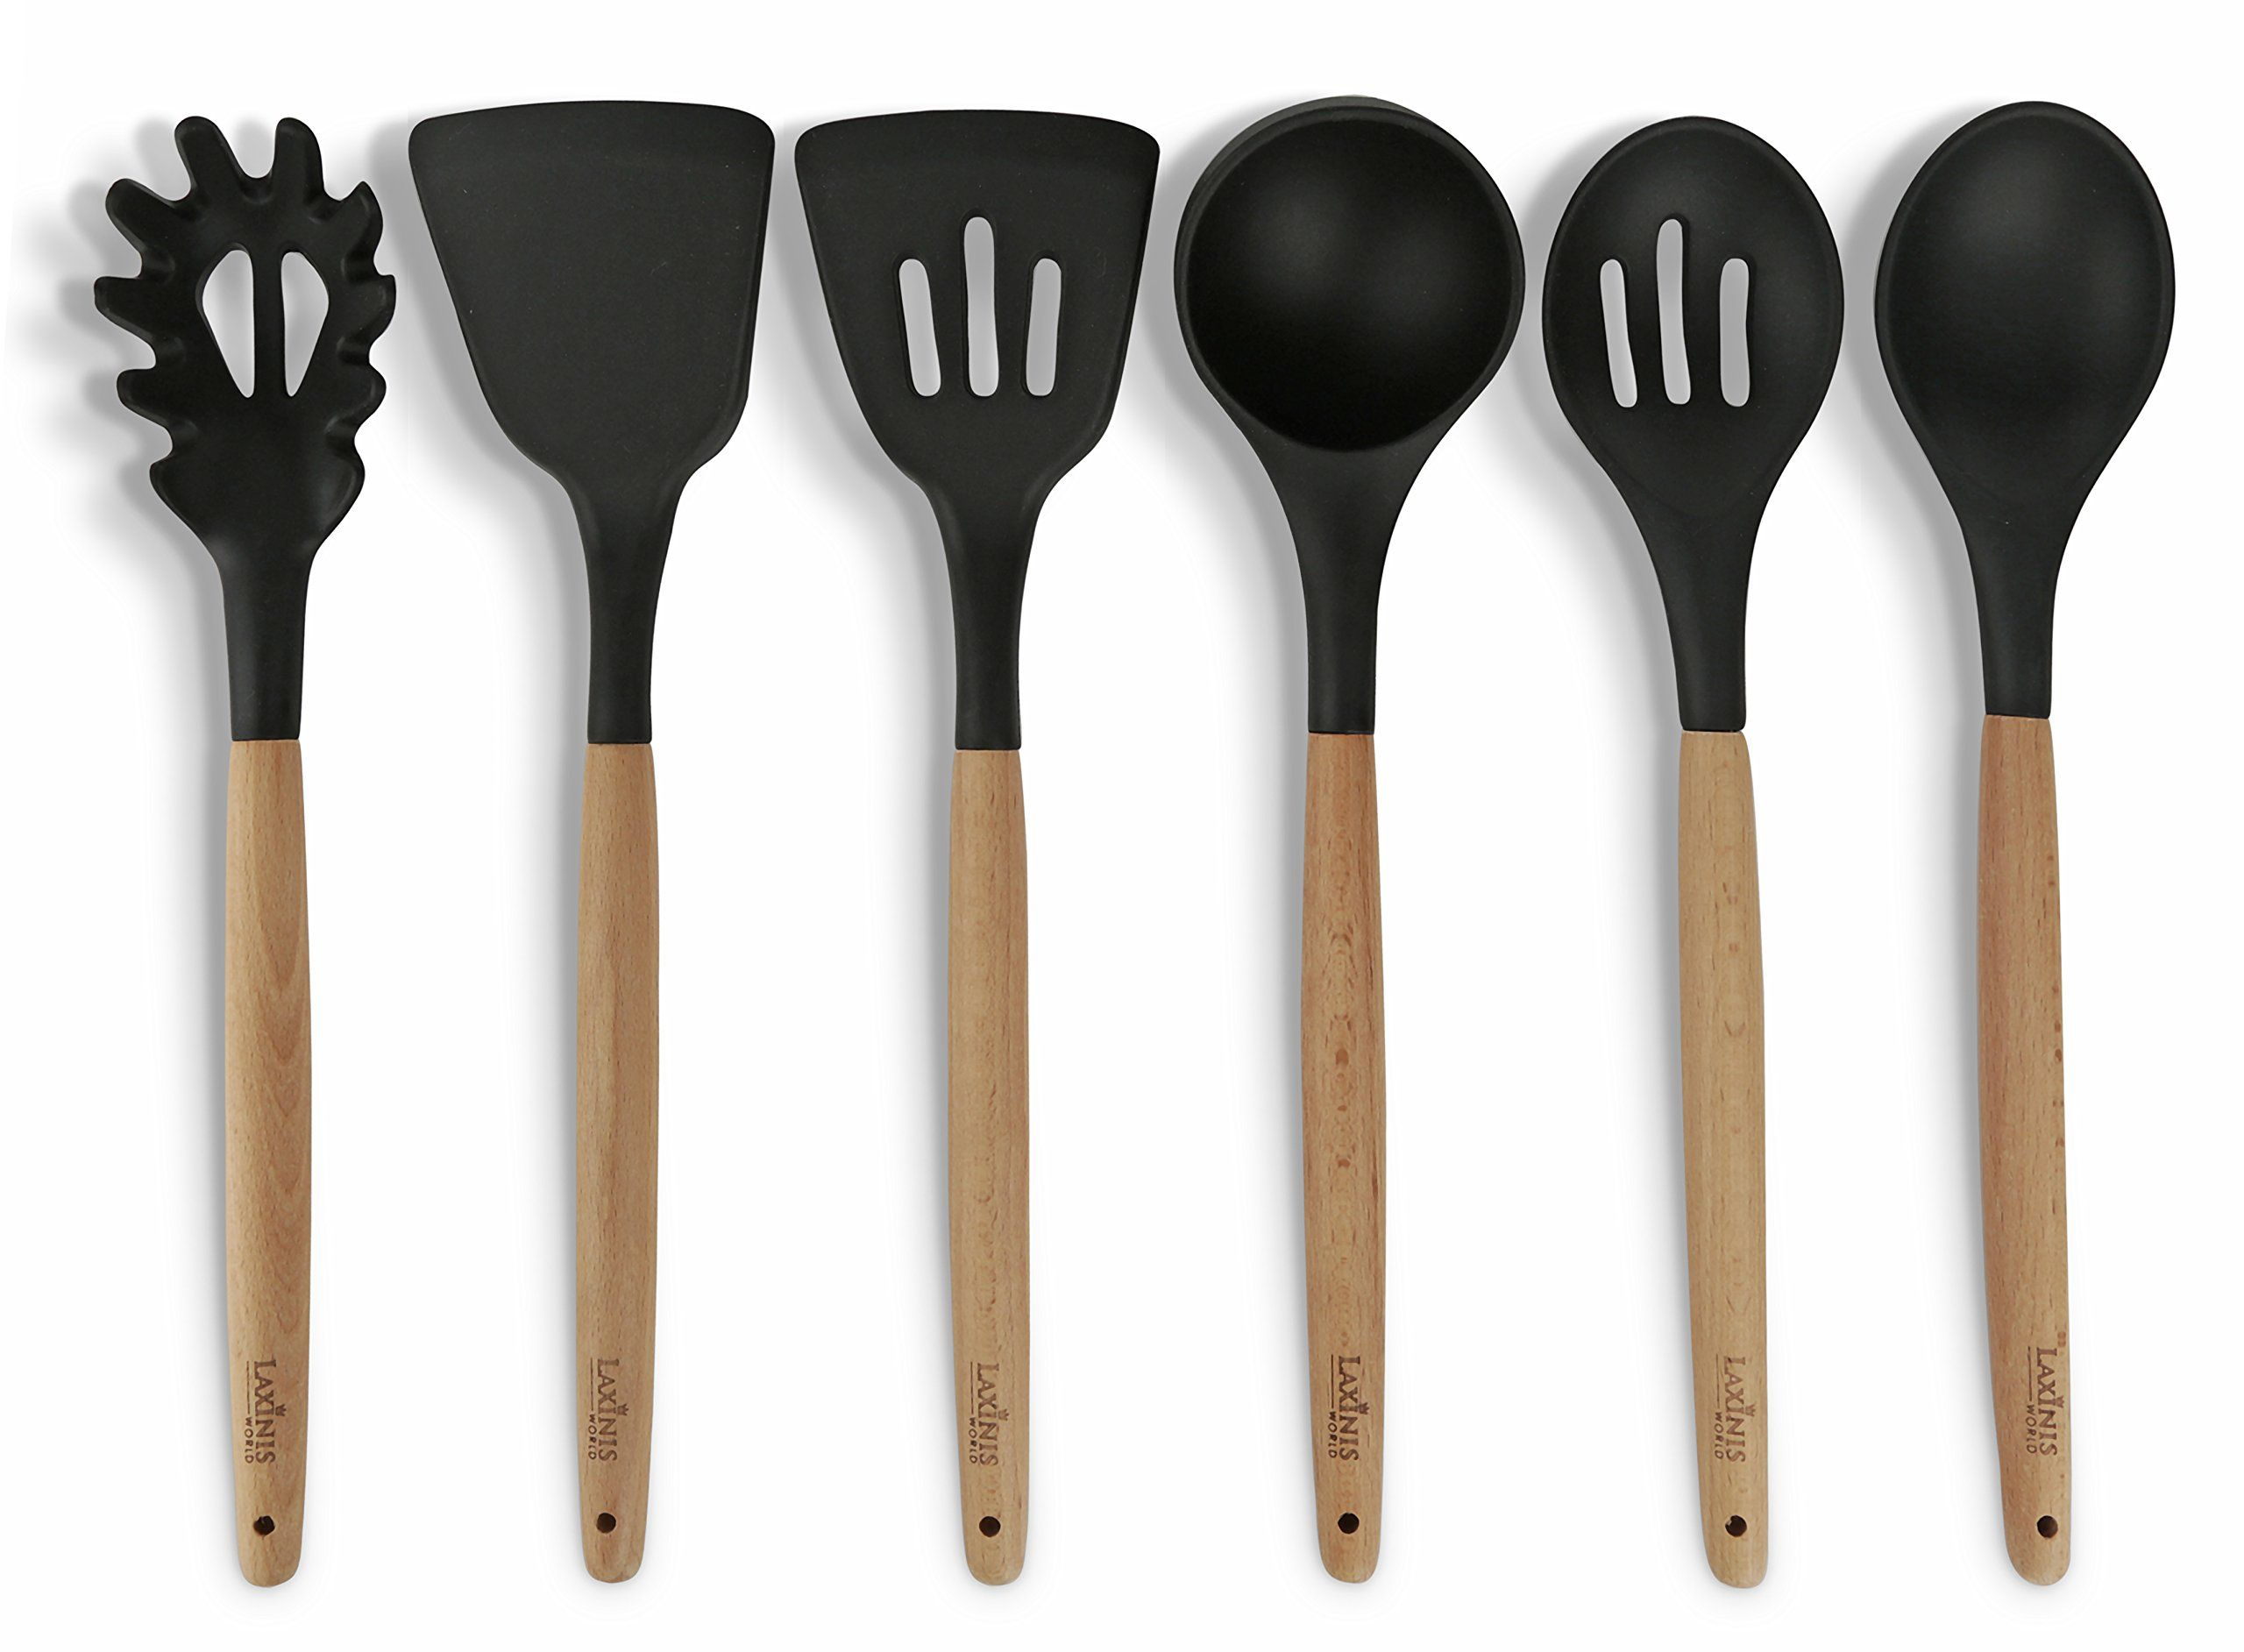 Delightful 6 Pc. Eco Friendly Beech Wood And Silicone Kitchen Utensil Set, Black  Silicone